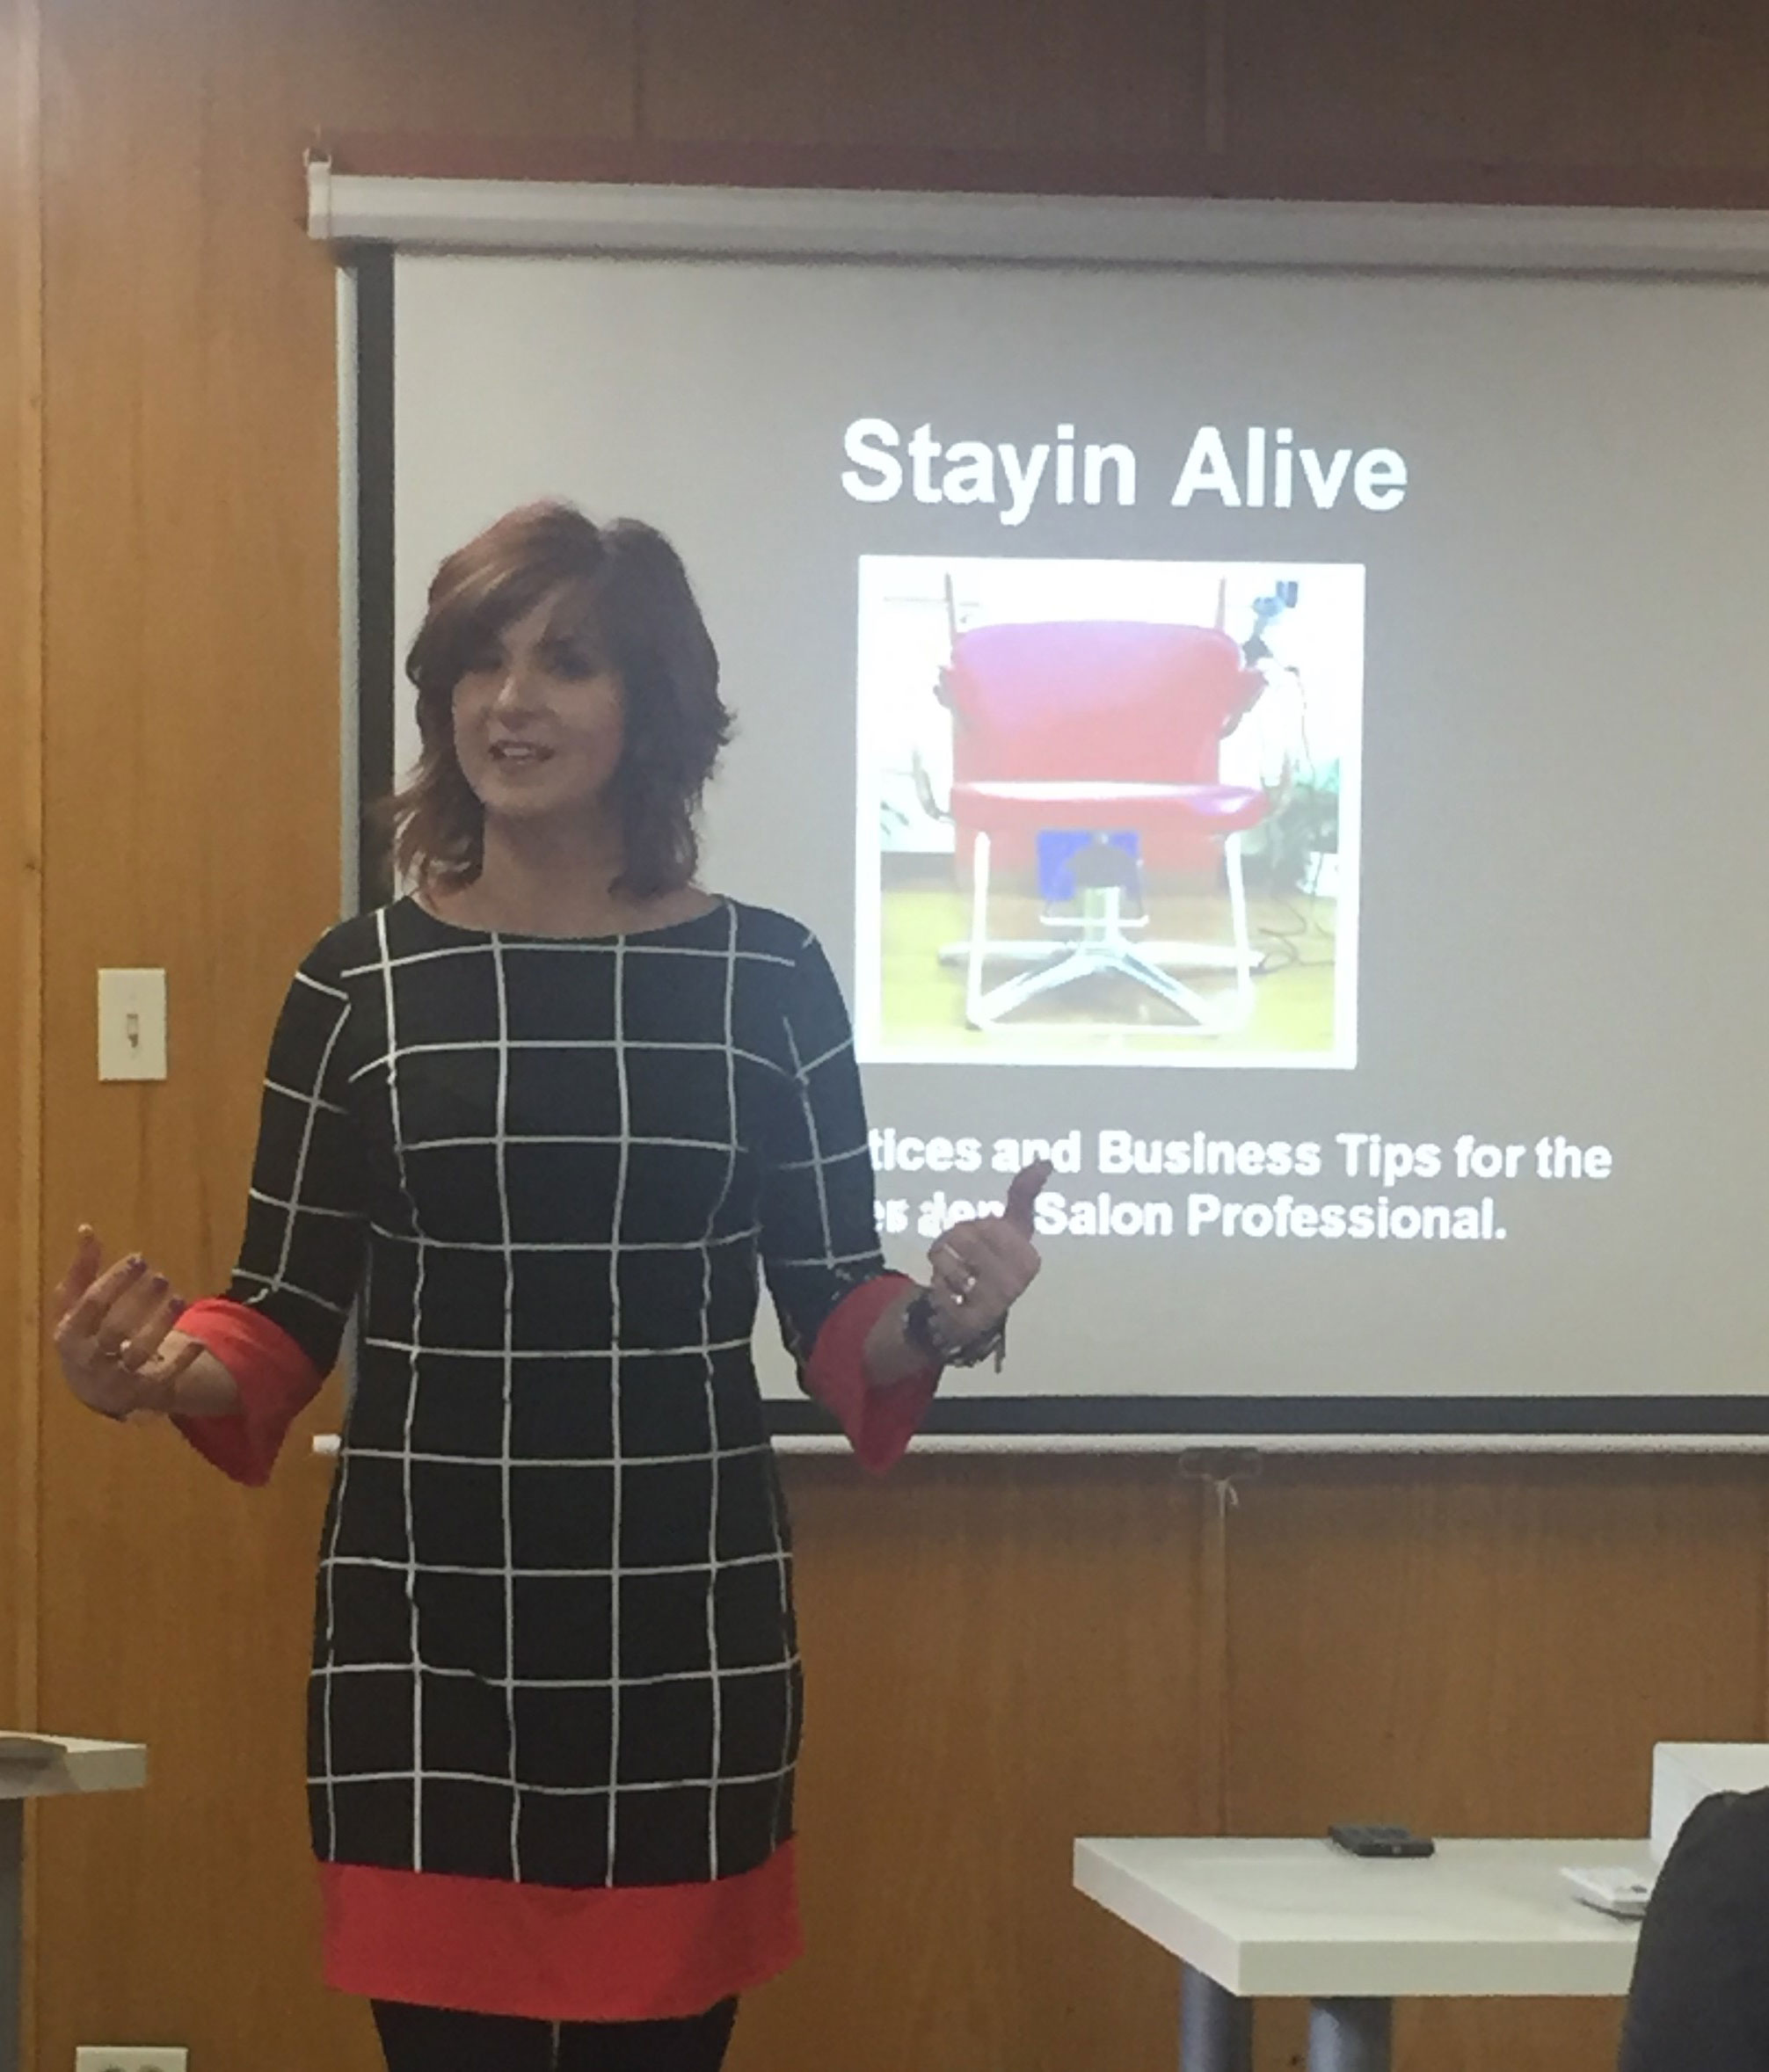 Kathy Jager discussed business, beauty and balance for solo artists at her class on Monday, April 24th at the John Amico Beauty Product Showroom and Educational Resource Center in Oak Forest, Illinois.